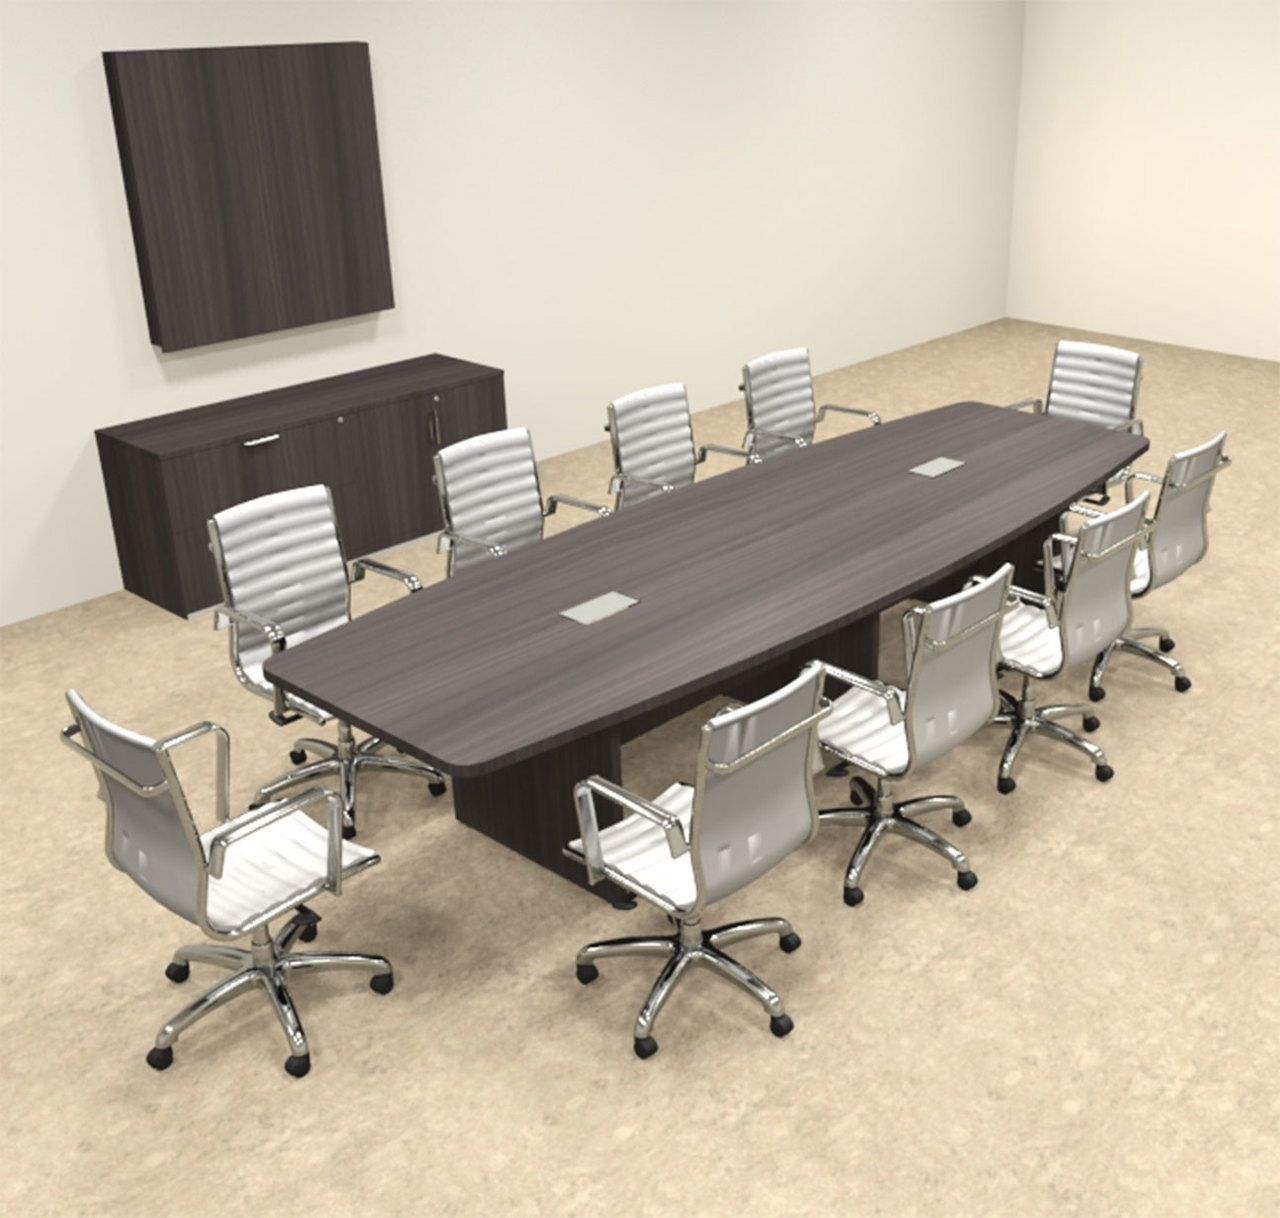 Modern Boat Shapedd 12 Feet Conference Table Of Con C134 Conference Table Modern Conference Table Office Table Design